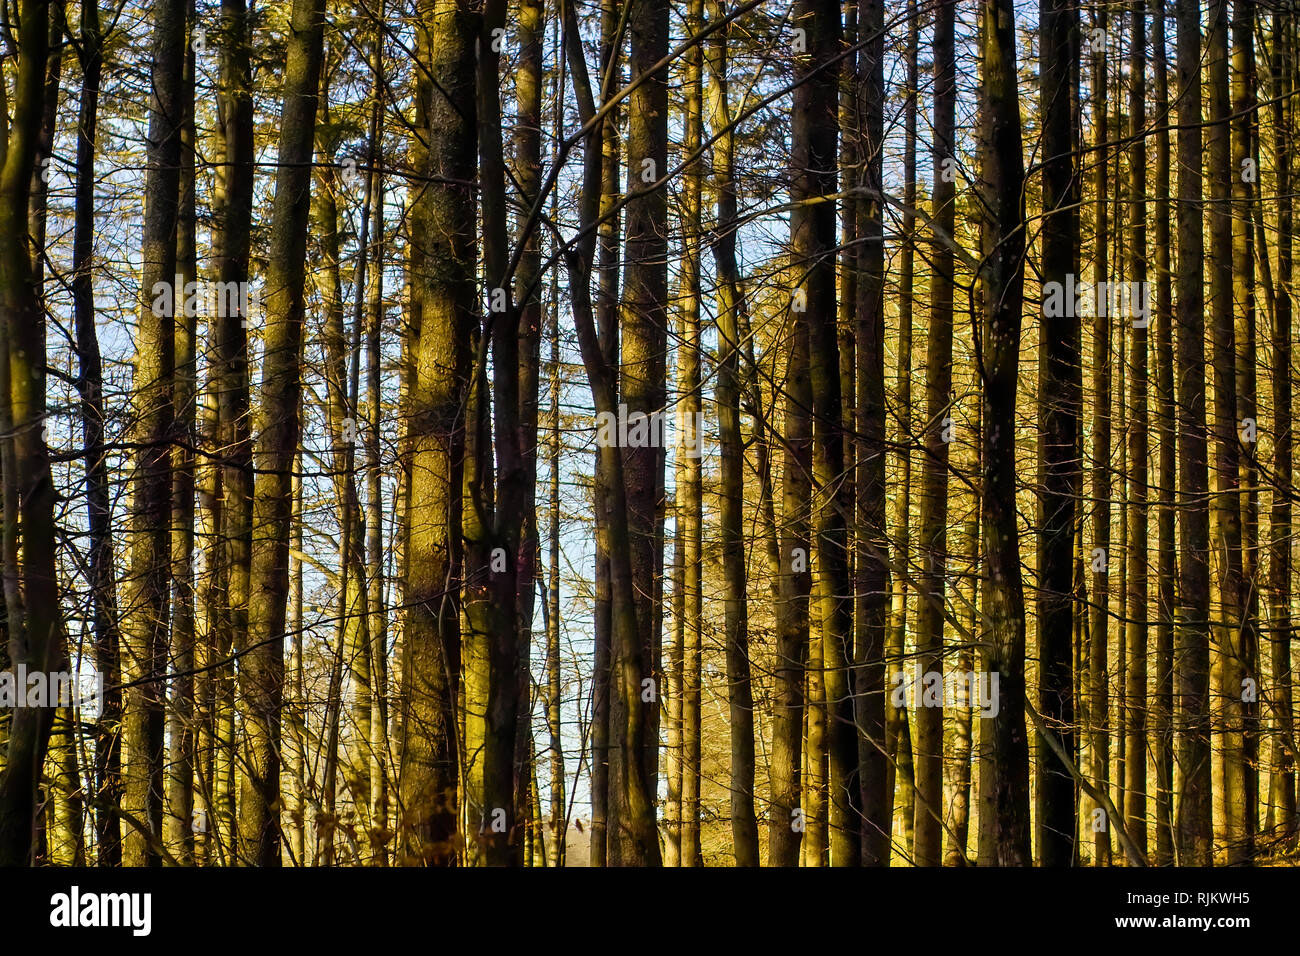 Spring awakening, trunks in a coniferous forest after winter, spruces, firs - Stock Image